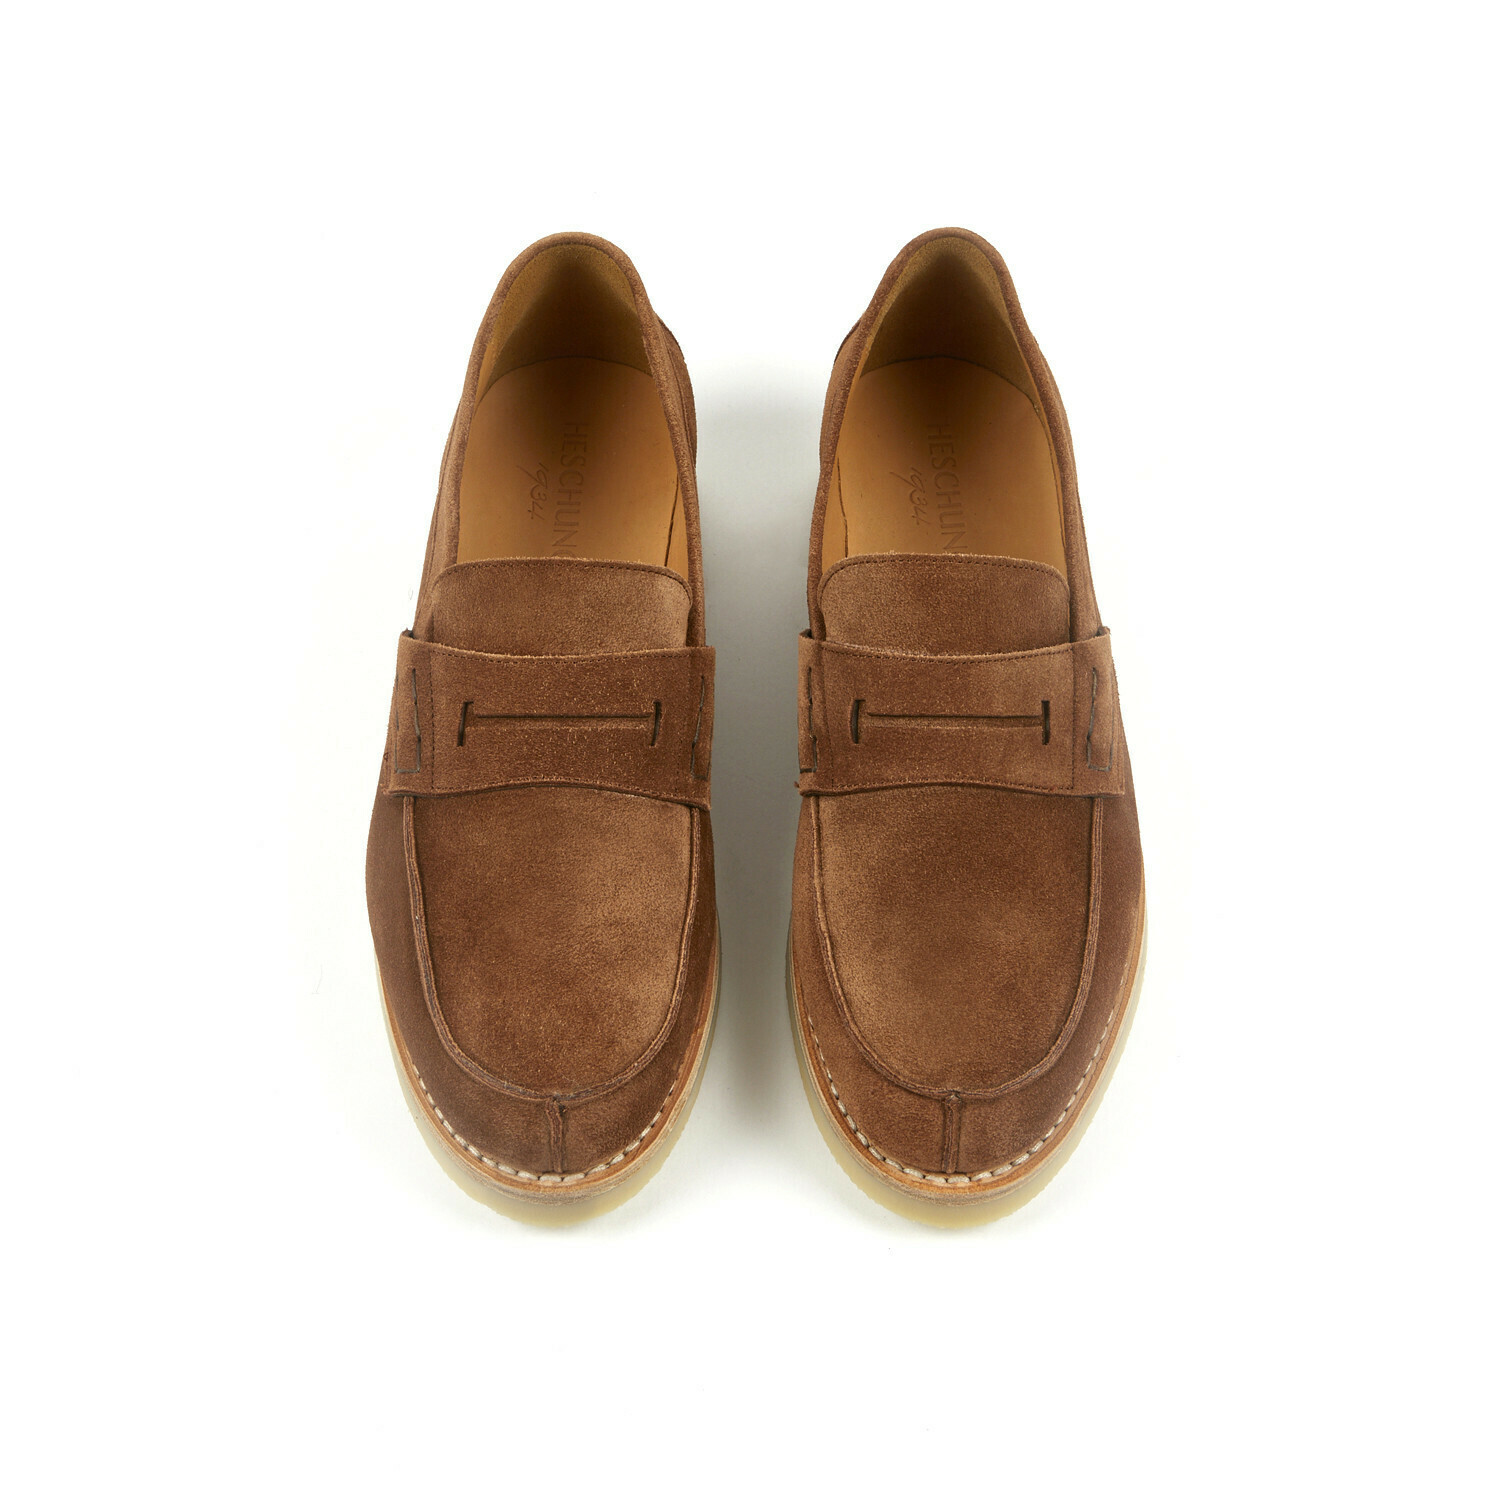 THYM Cocoa Suede Leather